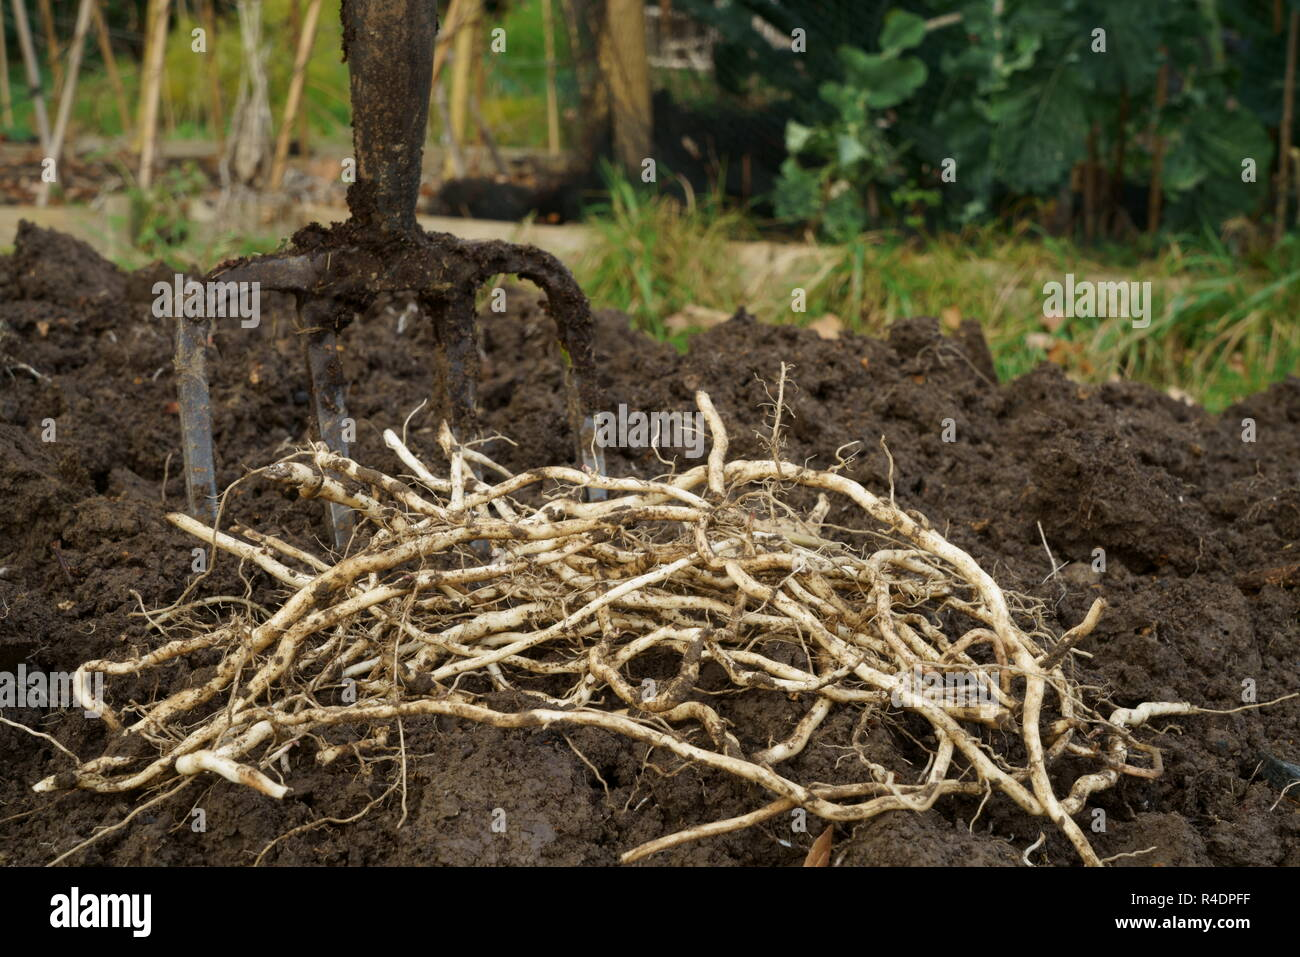 Bindweed roots (rhizomes) dug from a garden - Stock Image